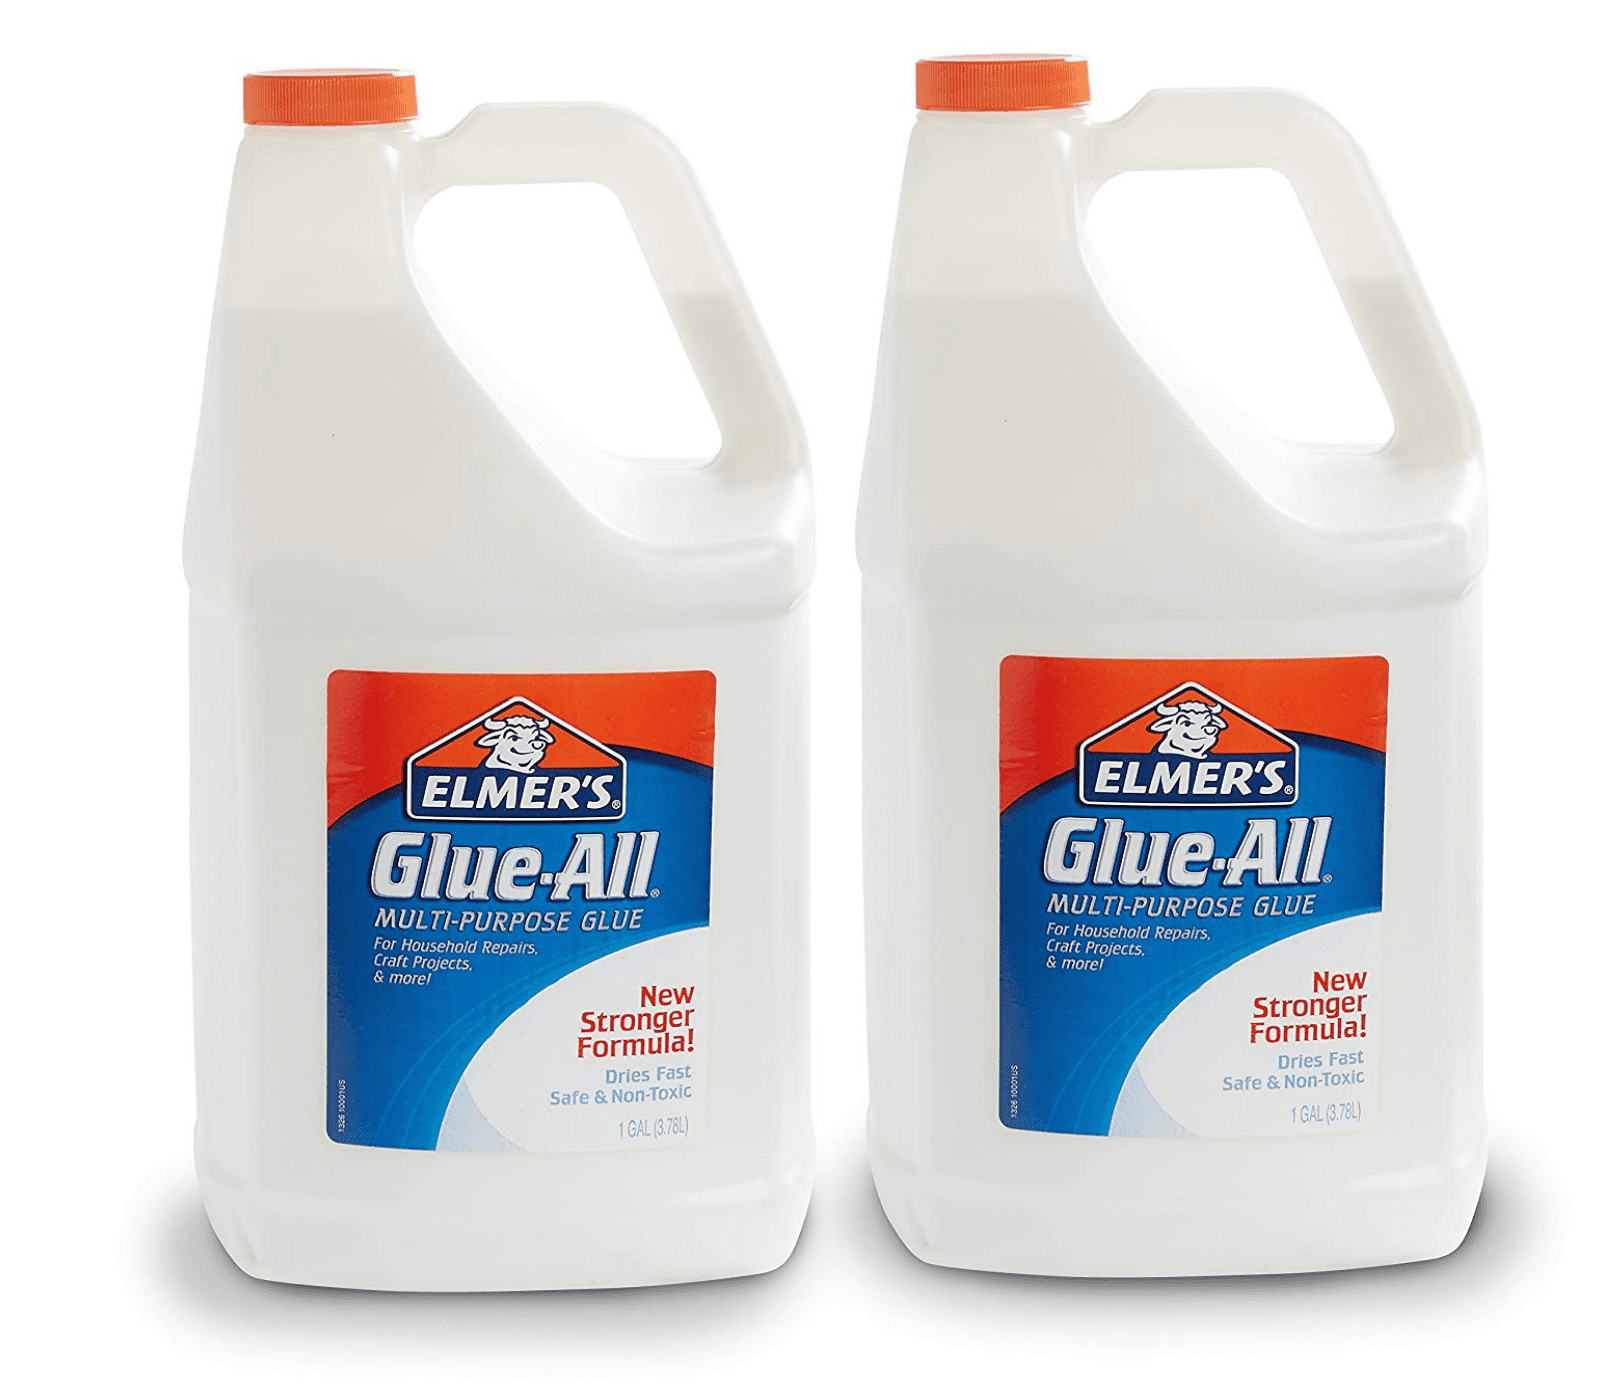 Elmer's Glue-All - 2 gallons - [product_type] - Dope Slimes LLC - Dope Slimes LLC